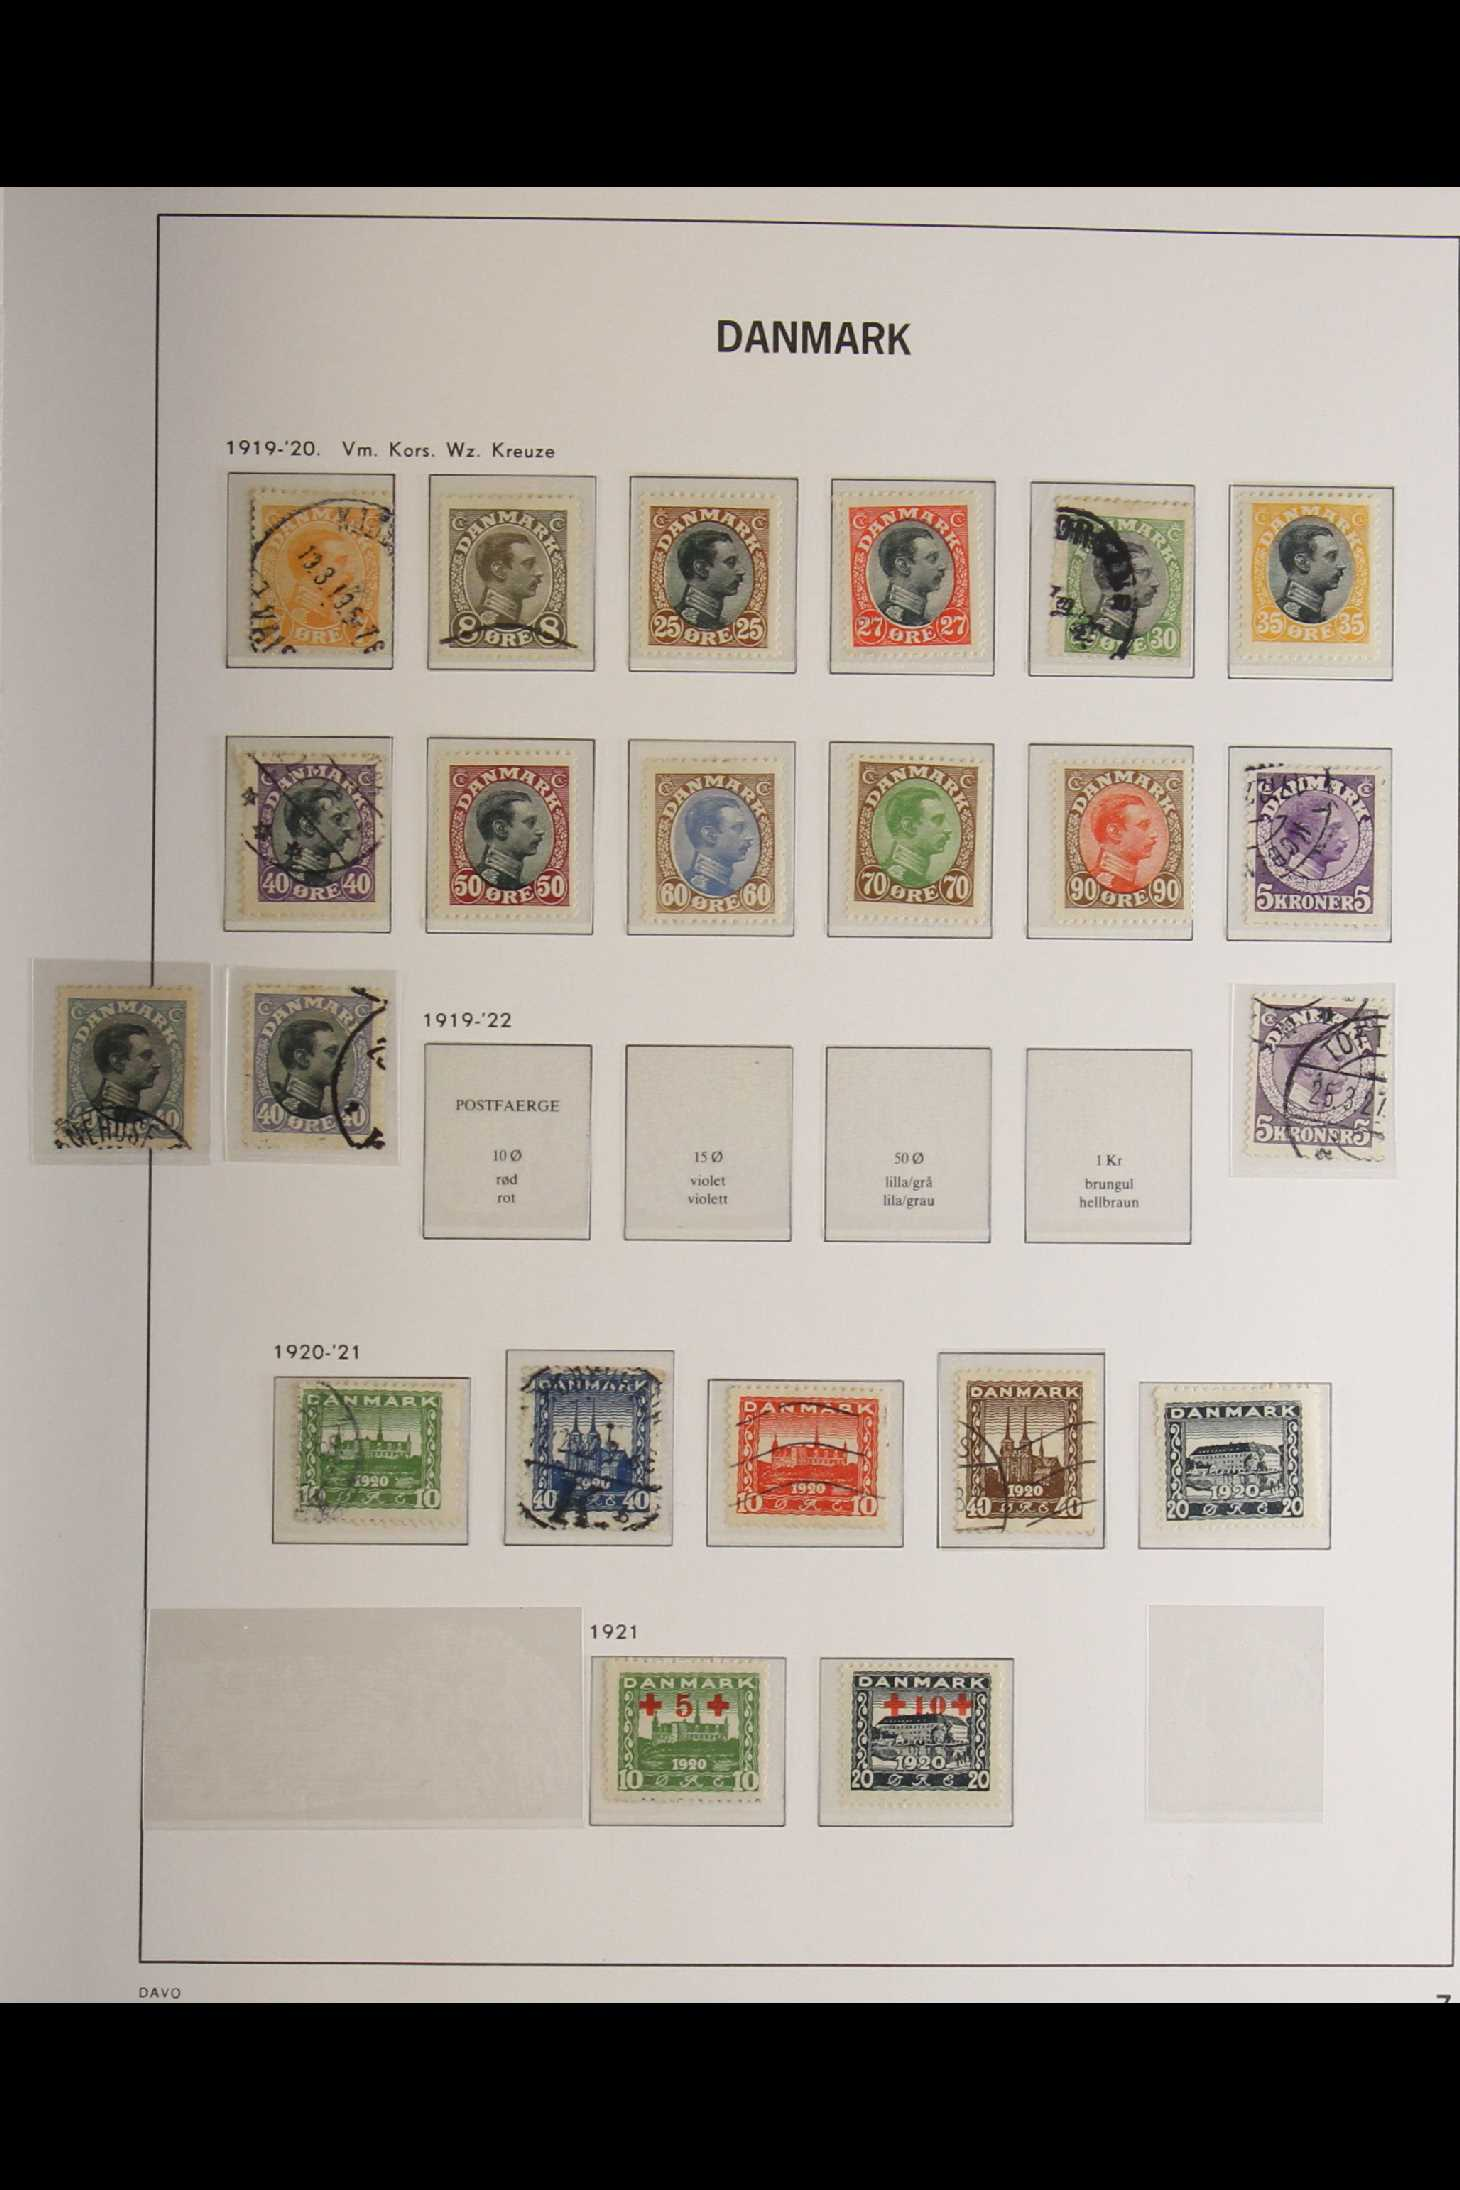 DENMARK 1882-1969 mint and used collection in an album incl. 1882 (small corner figures) 5 ore and - Image 3 of 15